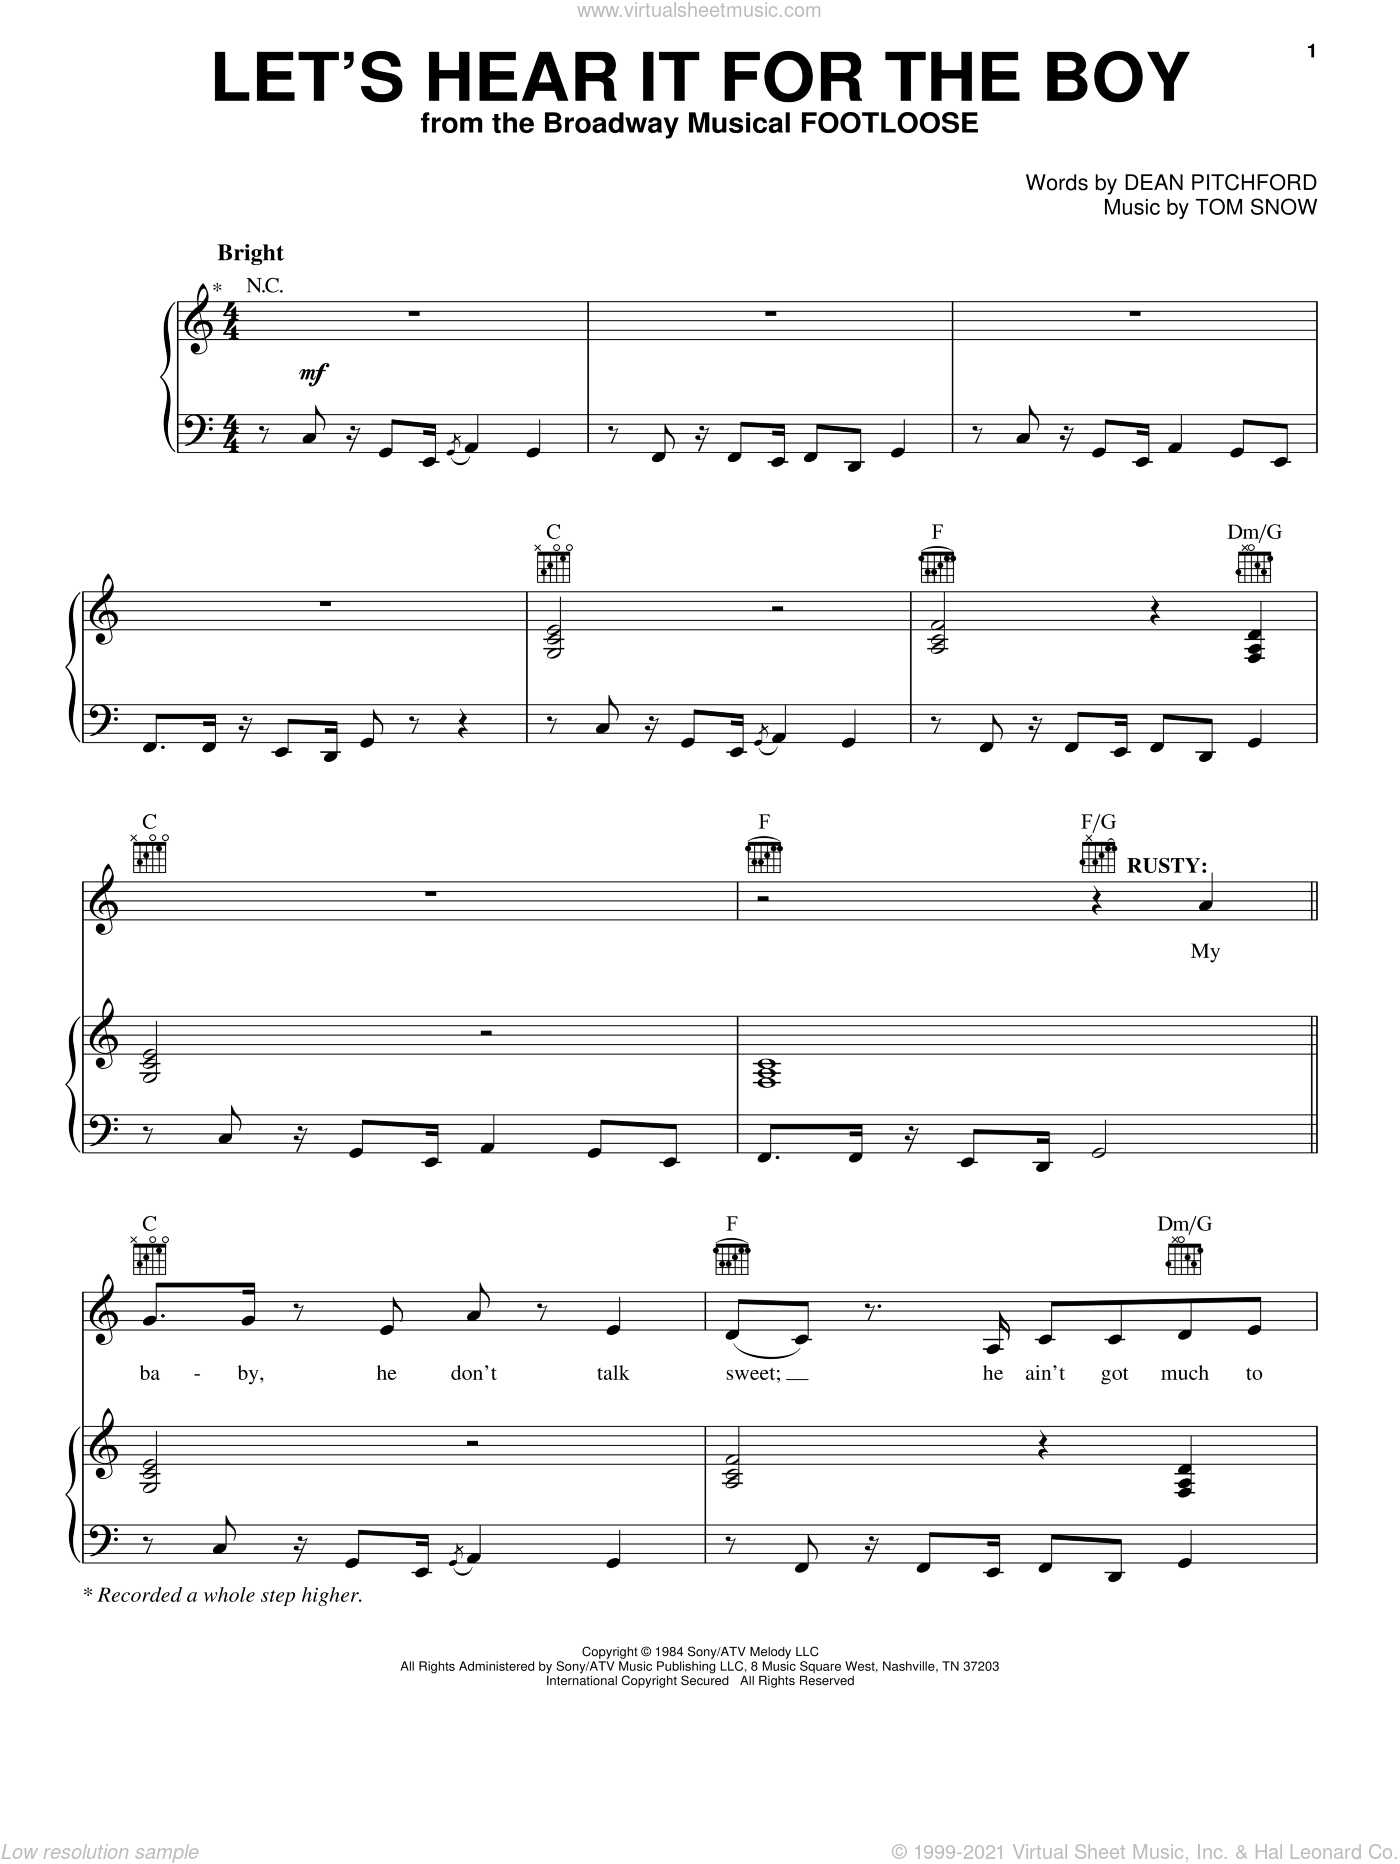 Let's Hear It For The Boy sheet music for voice, piano or guitar by Deniece Williams, Footloose (Movie), Footloose (Musical), Dean Pitchford and Tom Snow, intermediate skill level